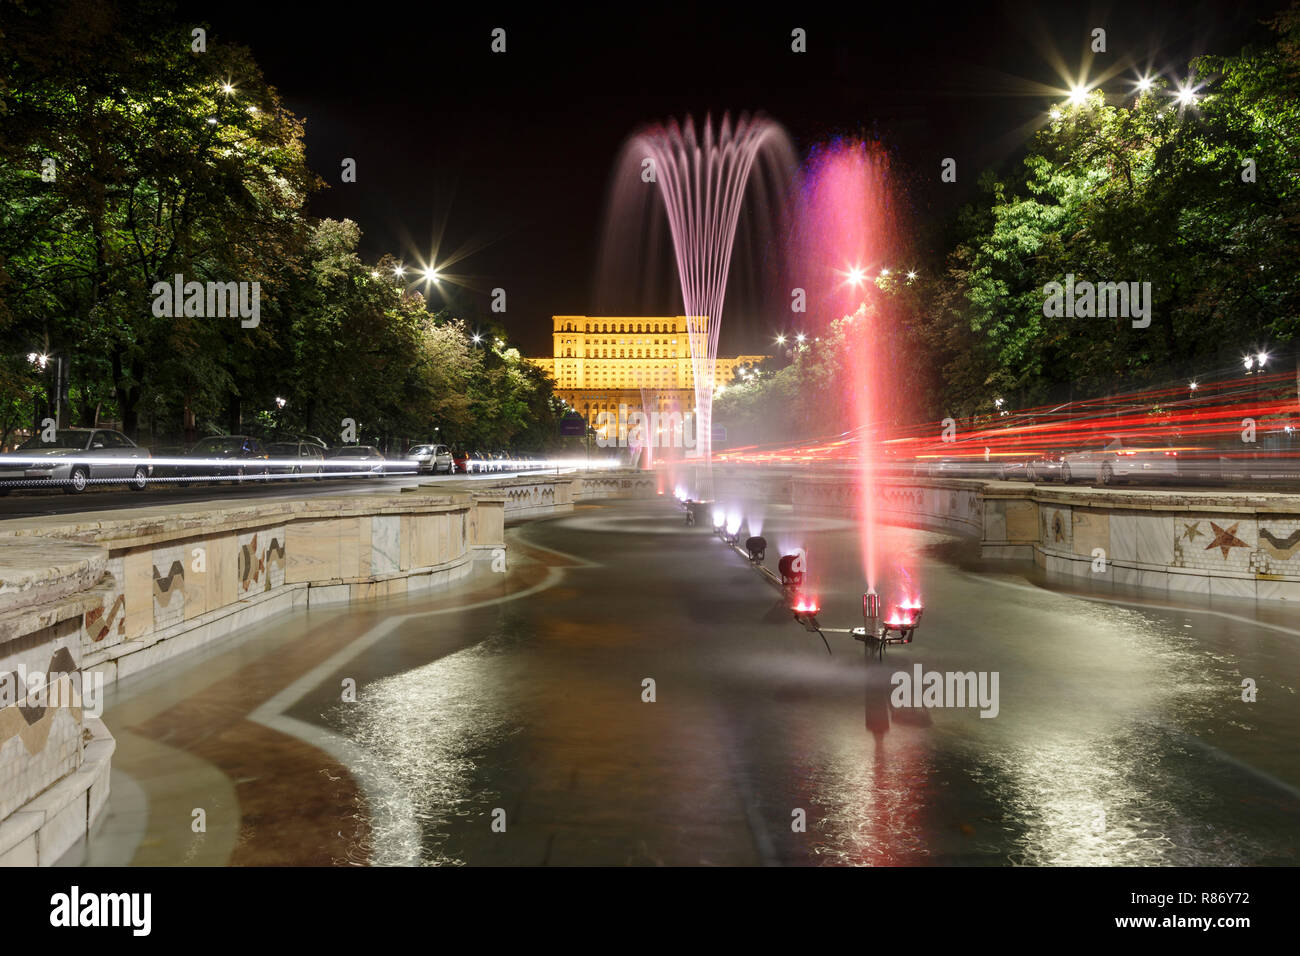 Building of Romanian parliament in Bucharest in a beautiful summer night, and fountains in front. Stock Photo